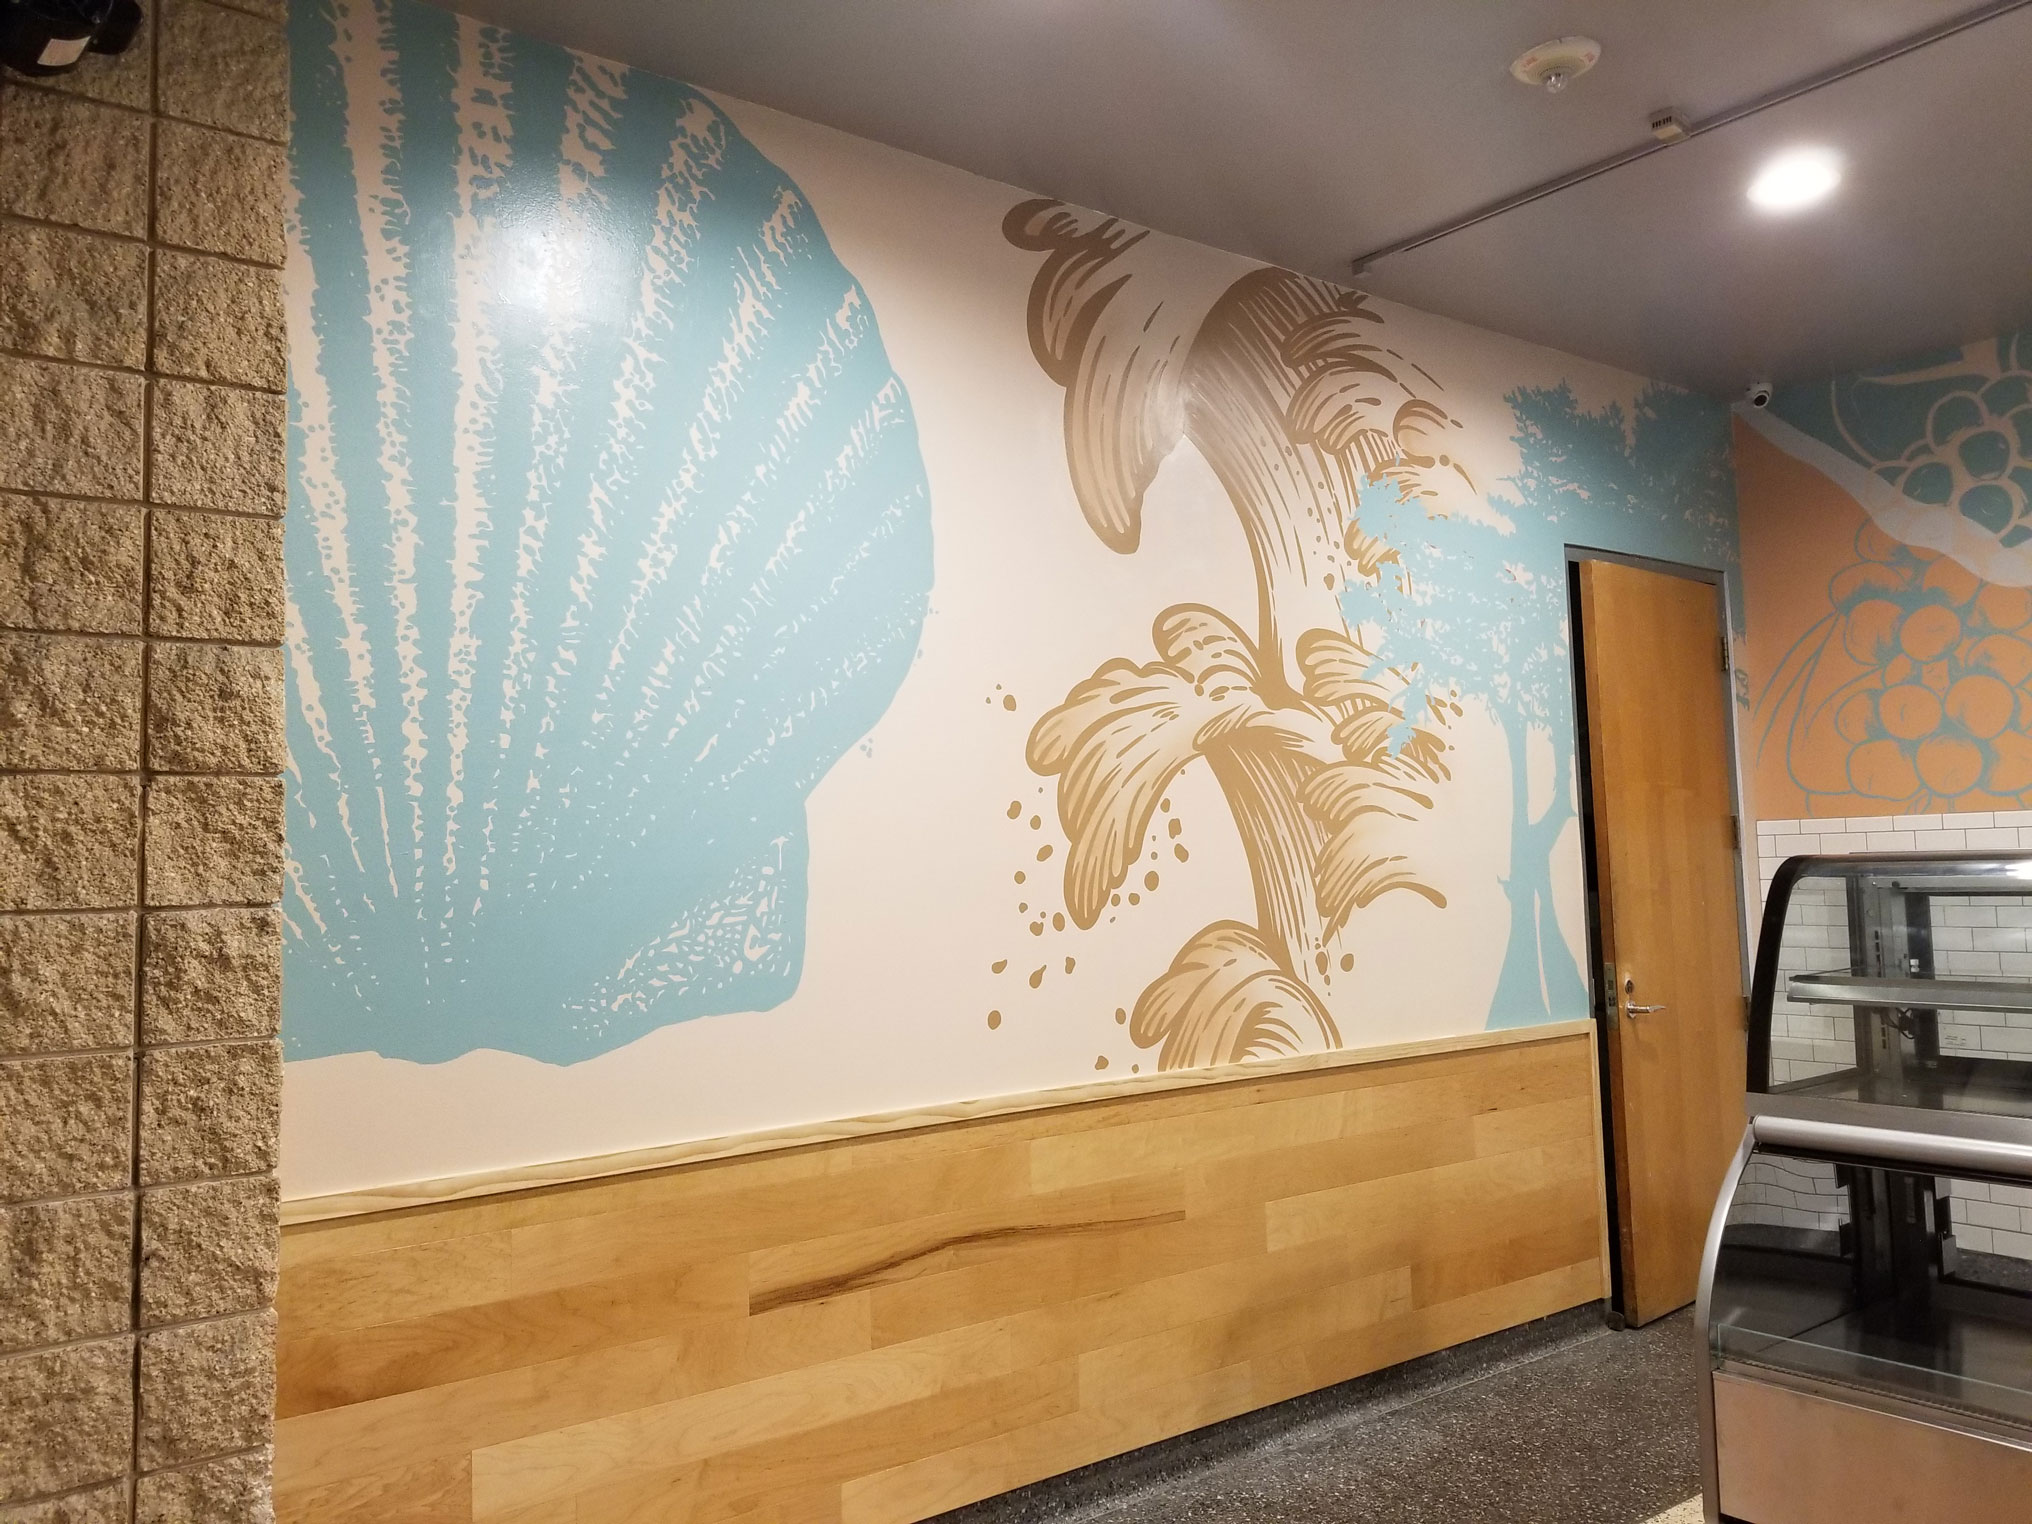 Tampa Convention Center Interior Mural image